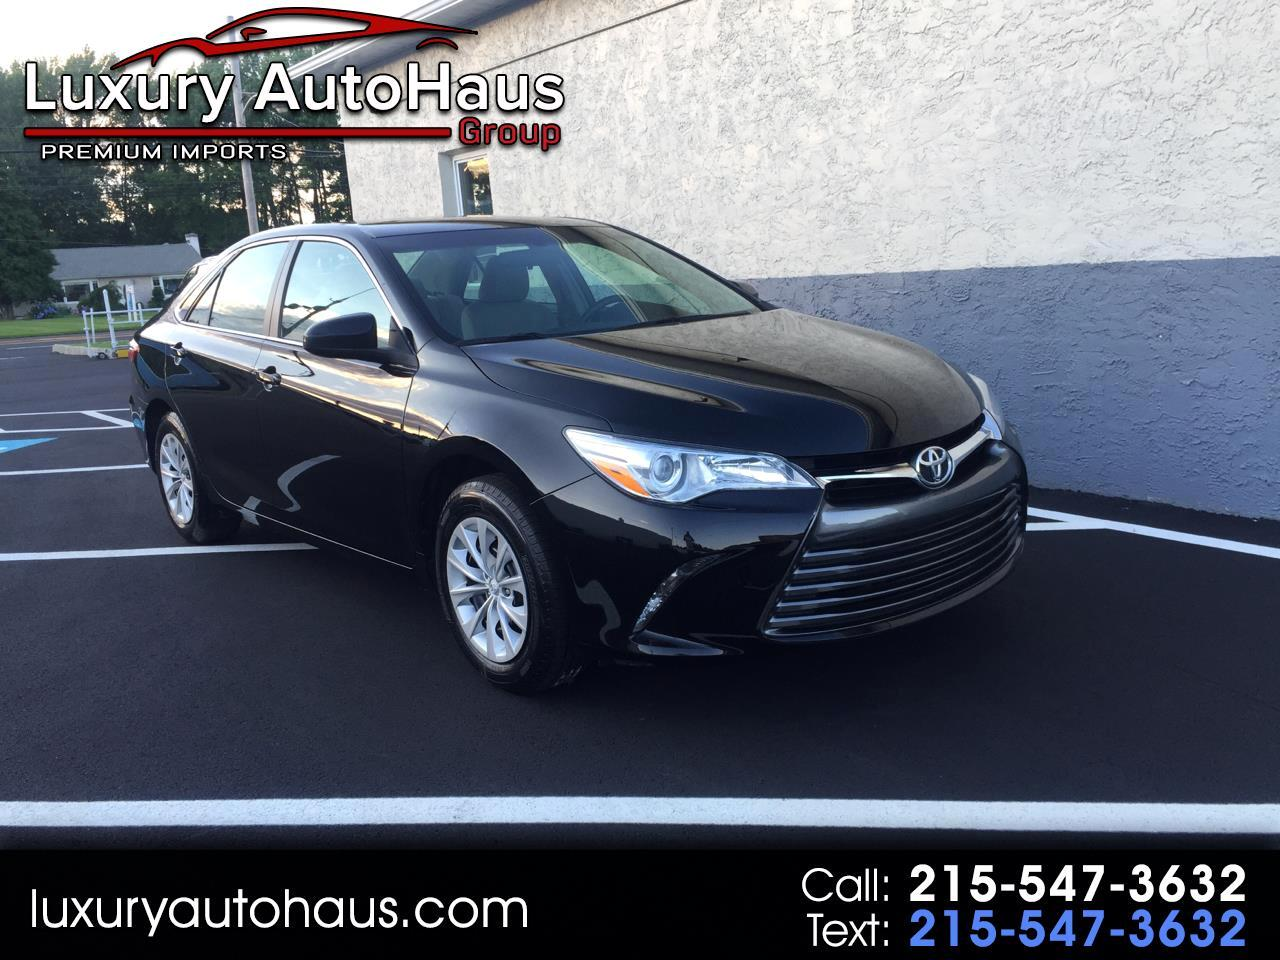 2016 Toyota Camry 4dr Sdn I4 Auto LE (Natl)